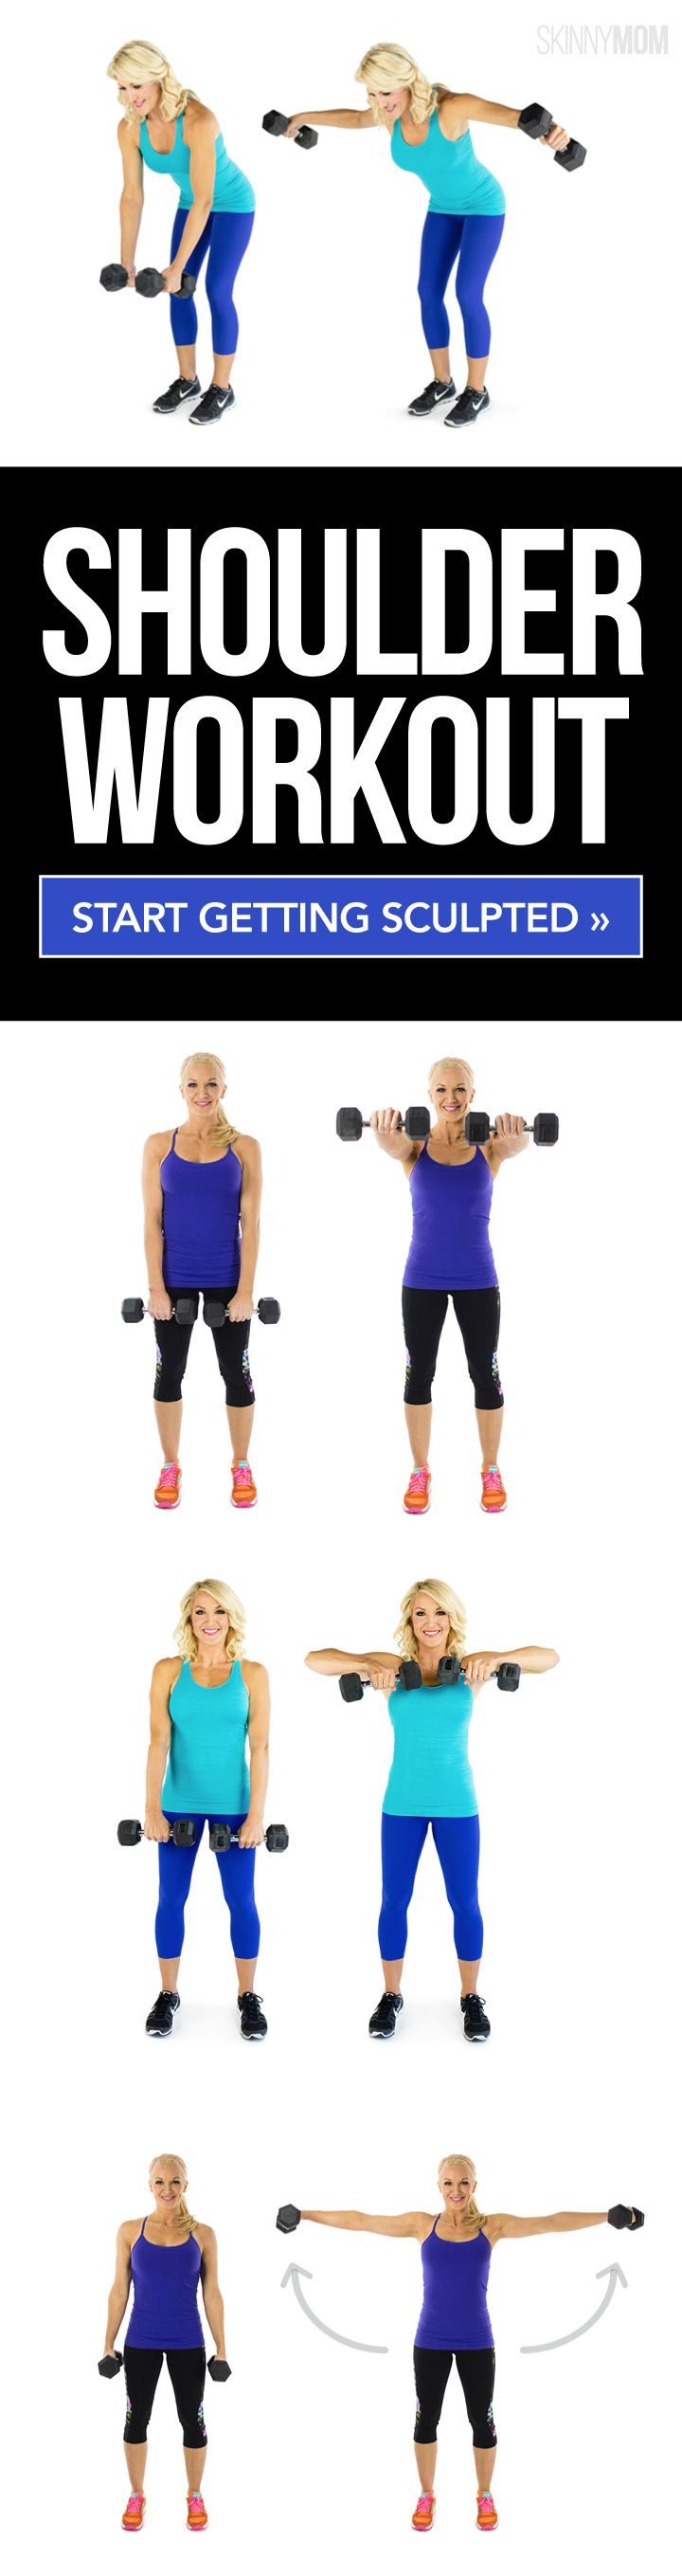 Sculpt your shoulders with this summer workout.